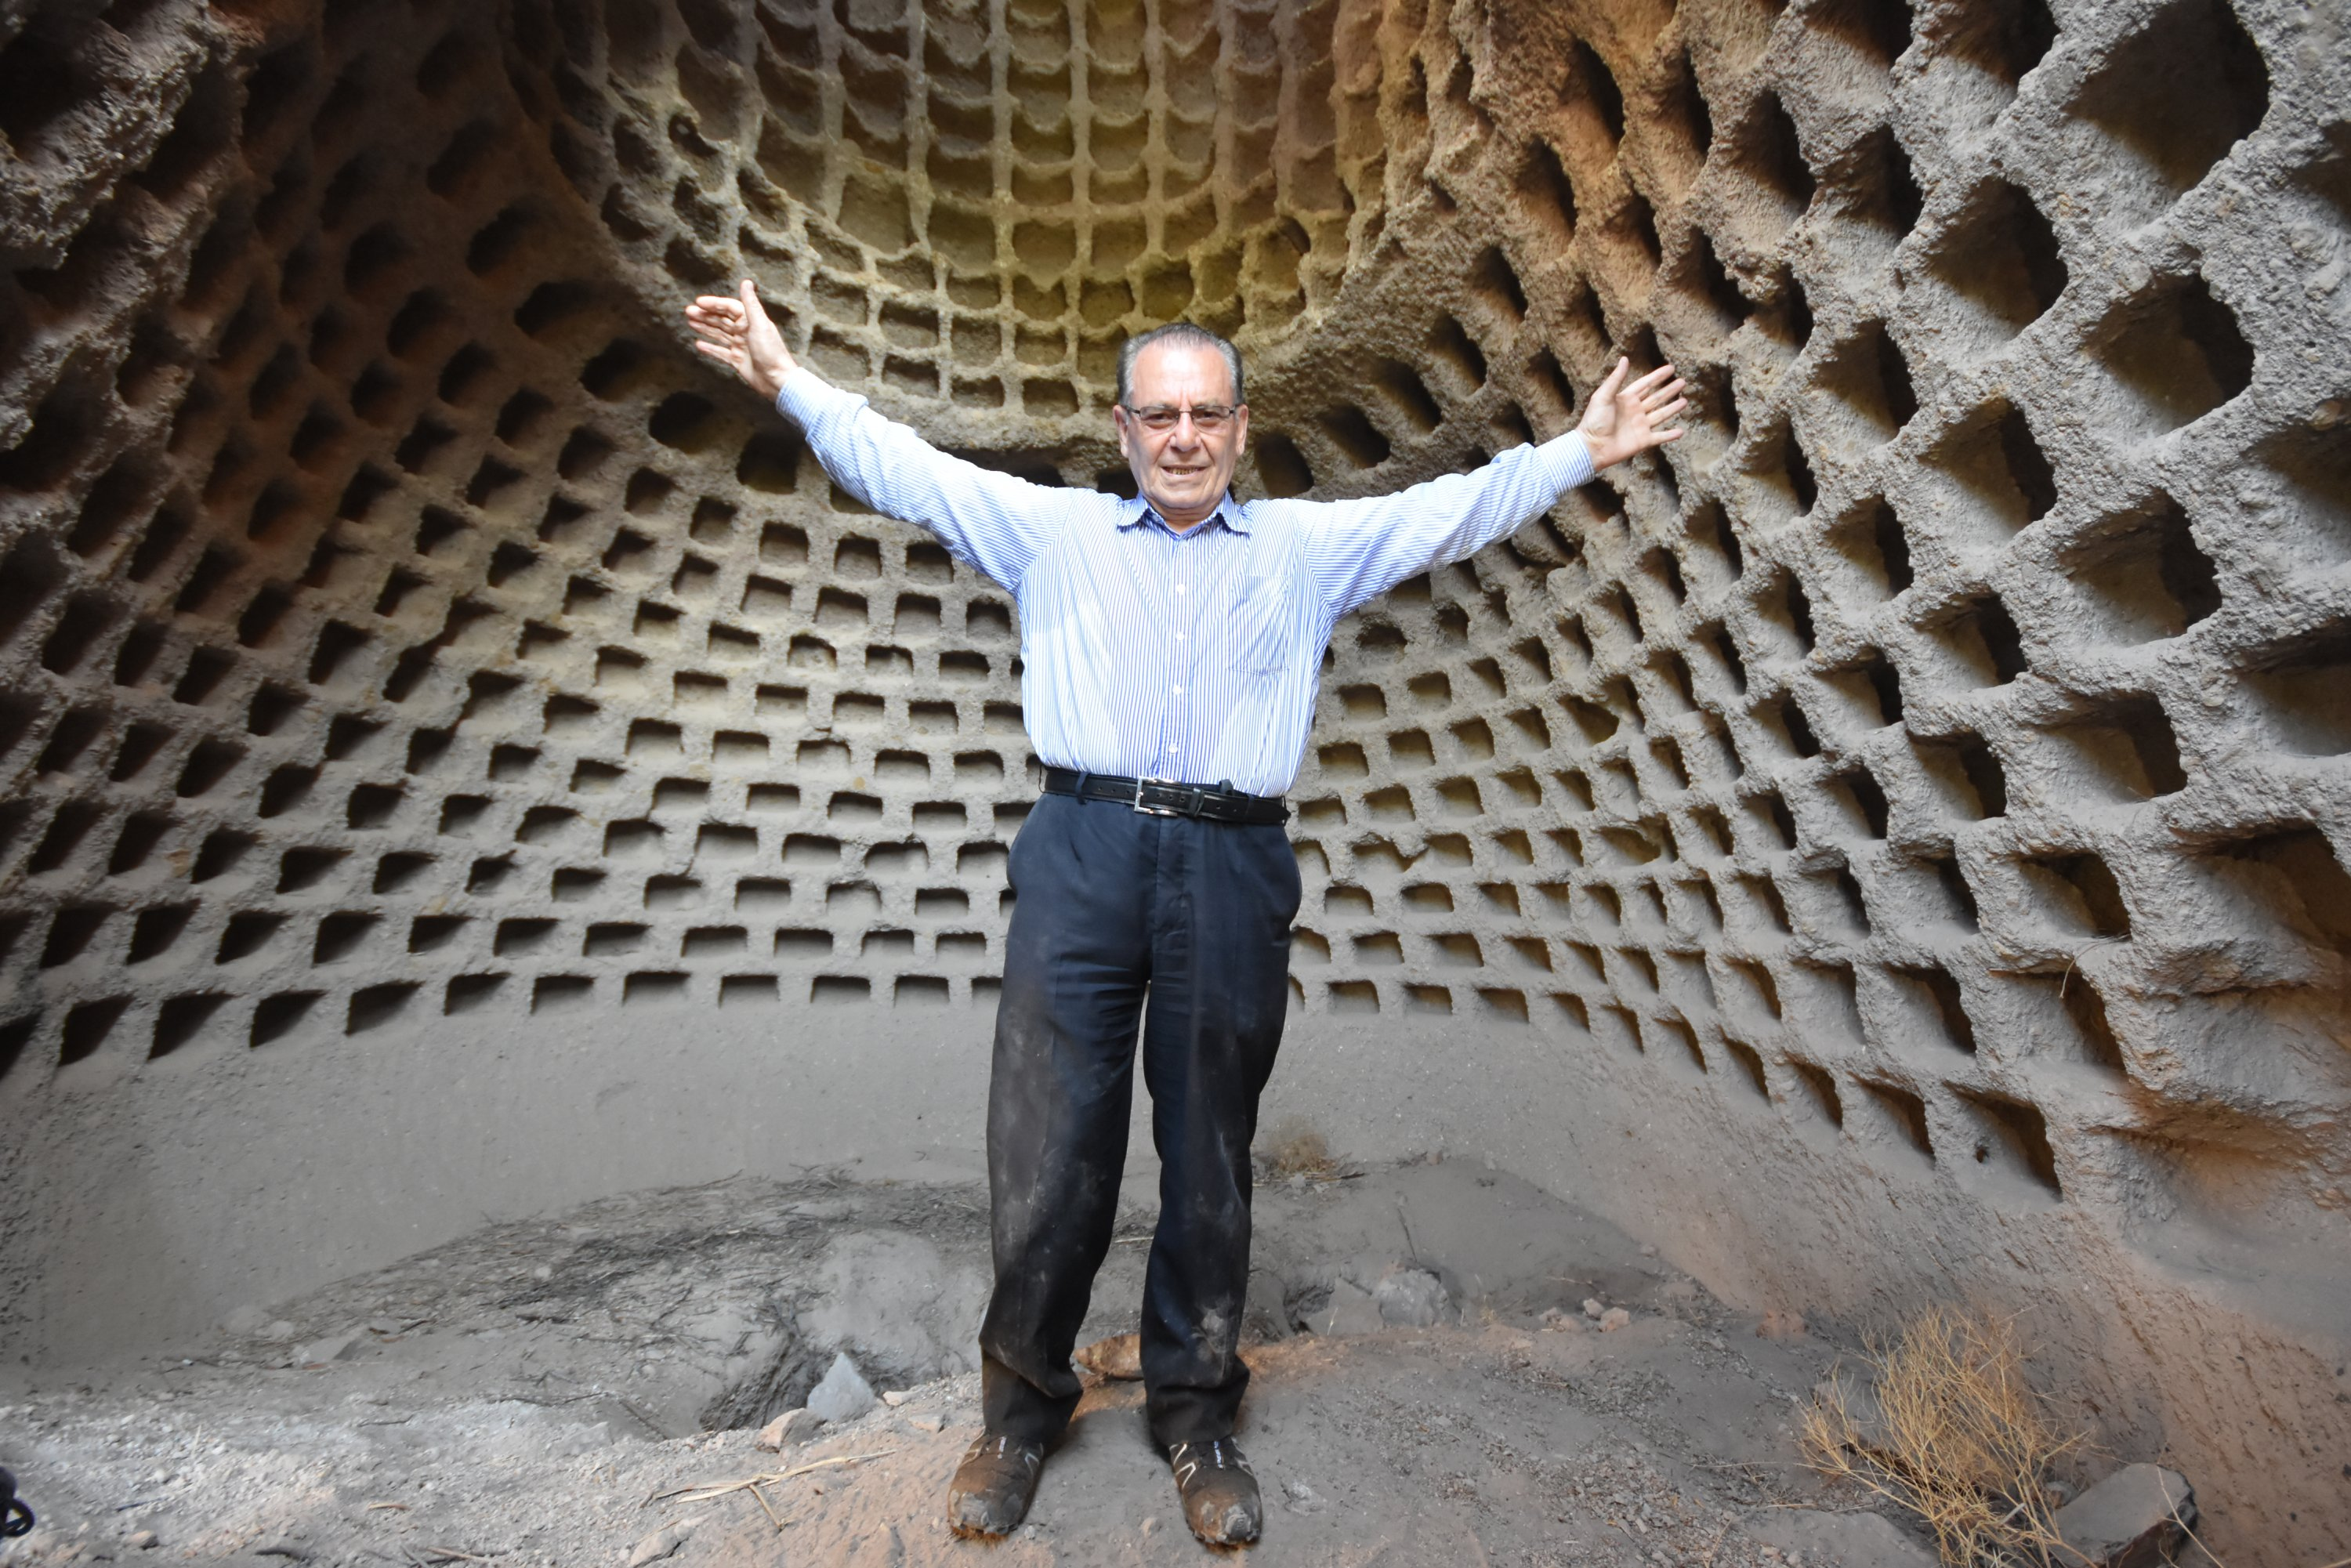 Sezai Yazıcı poses in front of the dovecotes. (AA Photo)